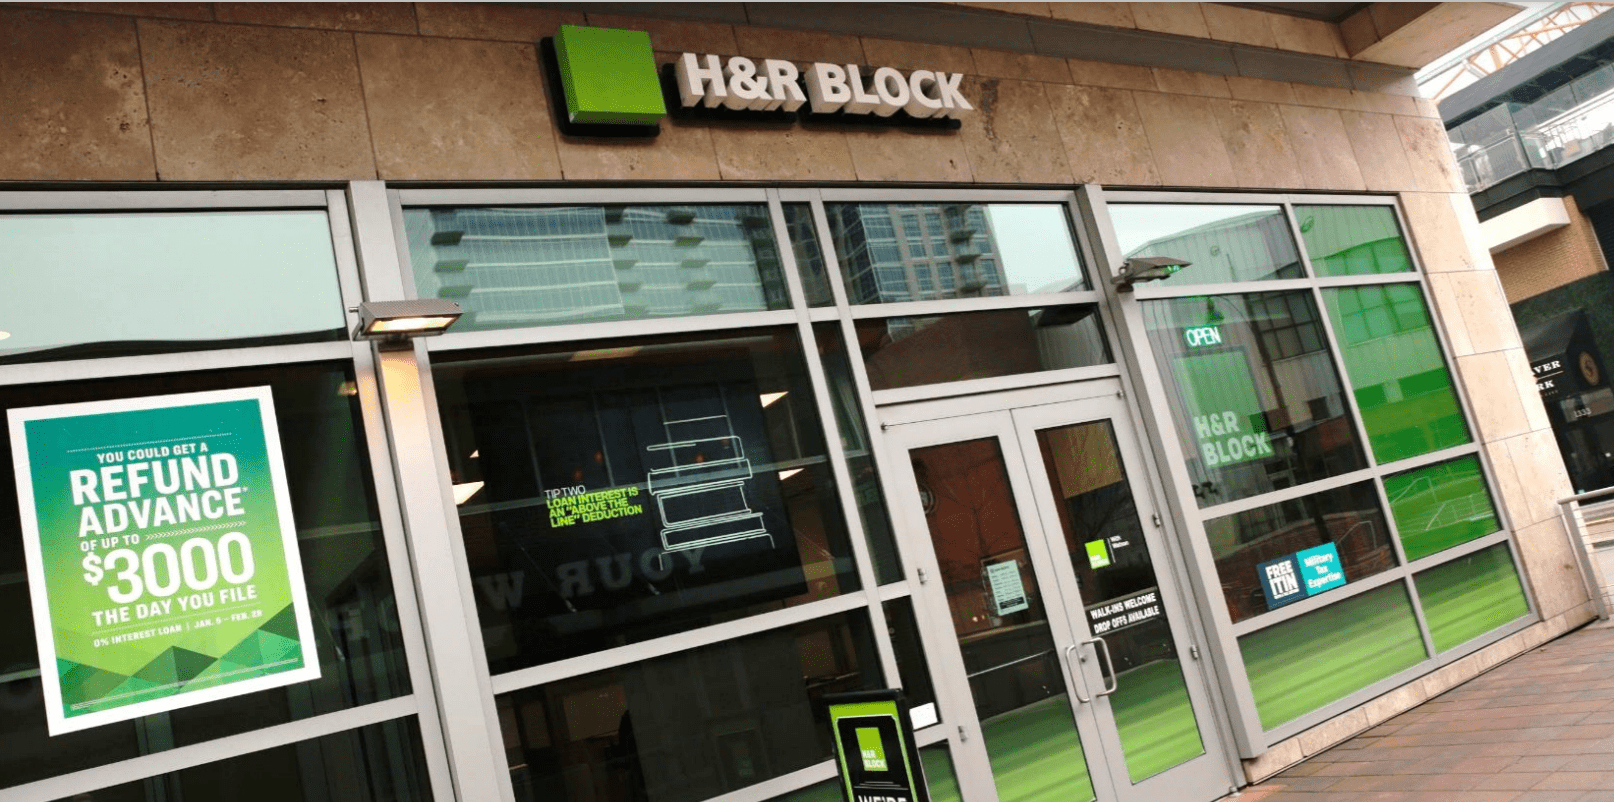 HR Block store front